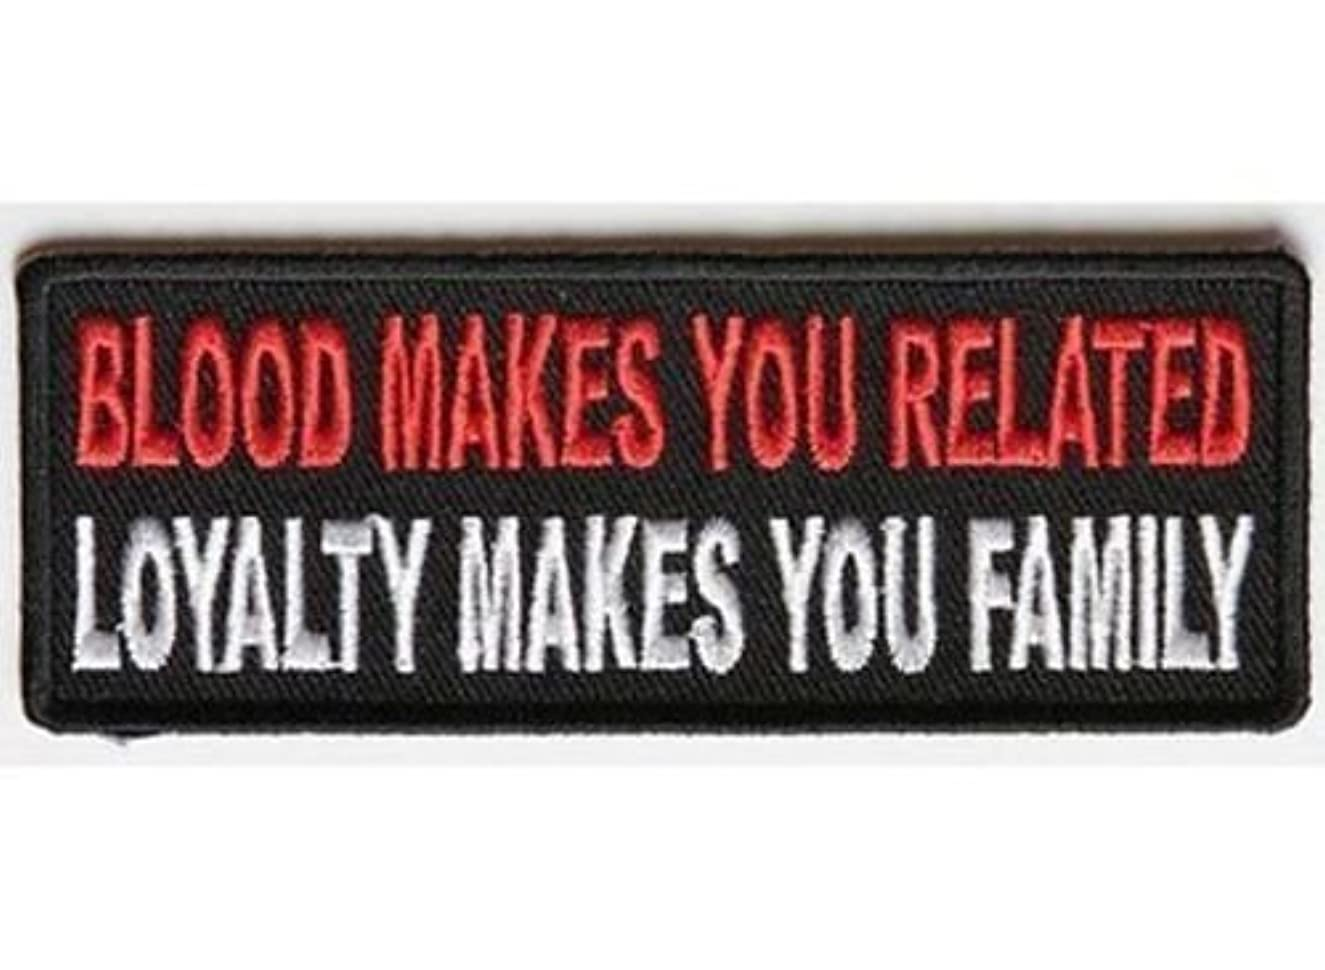 BLOOD MAKES YOU RELATED Embroidered Funny Biker Saying Patch Vest Jacket Emblem Motorcycle